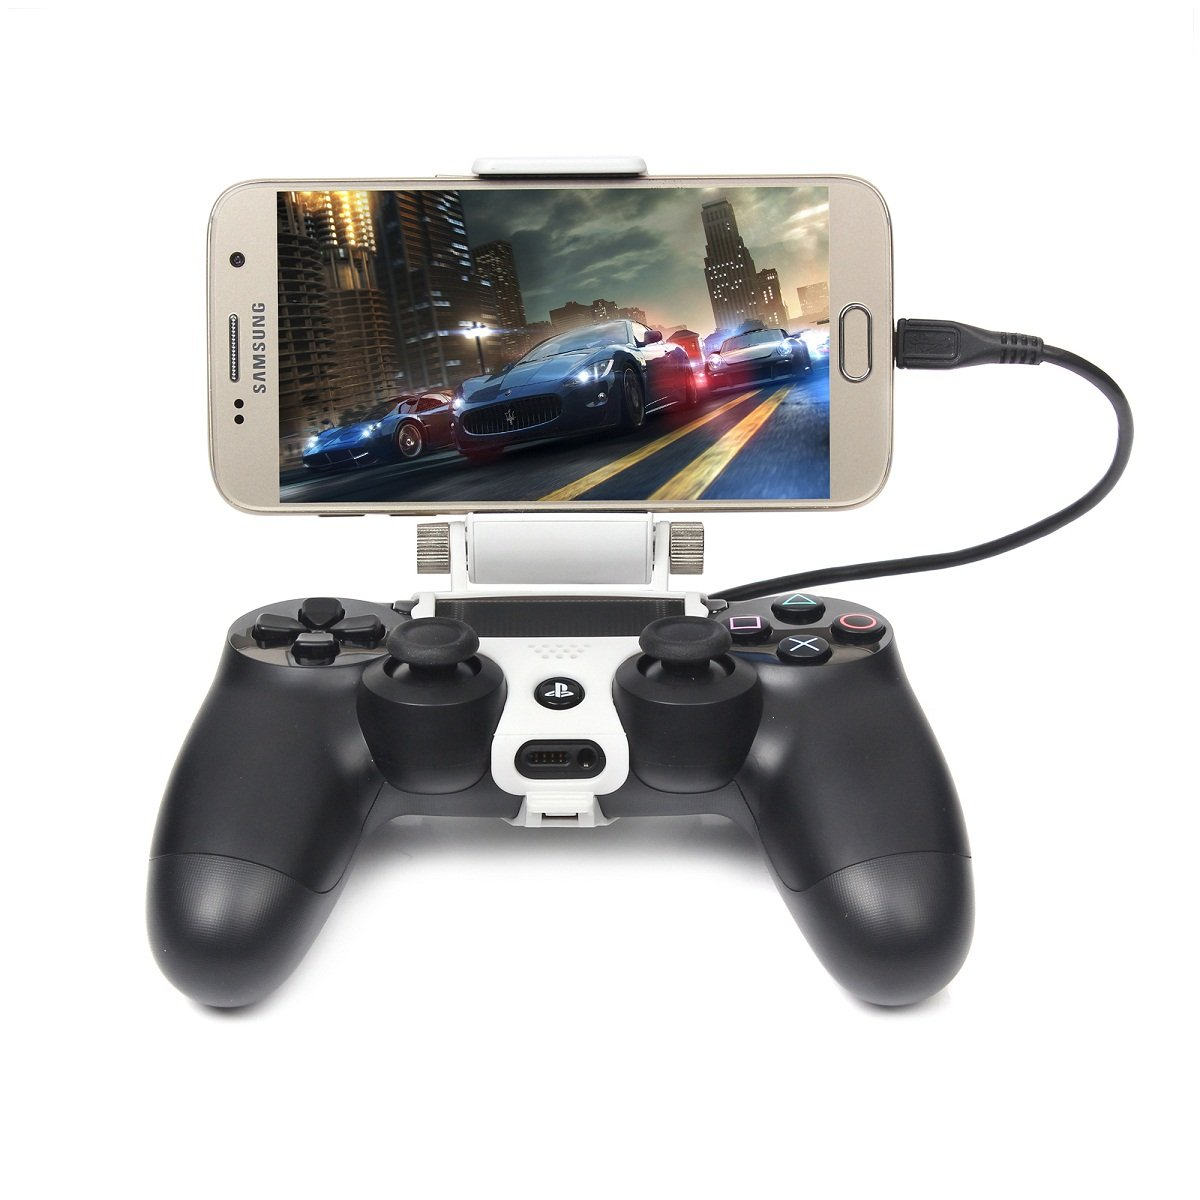 Megadream [2nd Generation] PS4 Controller Phone Clip Holder for Sony Playstation 4 PS4 Pro Slim, 180 Degree Adjustable Mount Stand Android Samsung Galaxy S8 S8+ S7 Edge S7 S6 Note 8 6 Maximum 7.9inch by Megadream